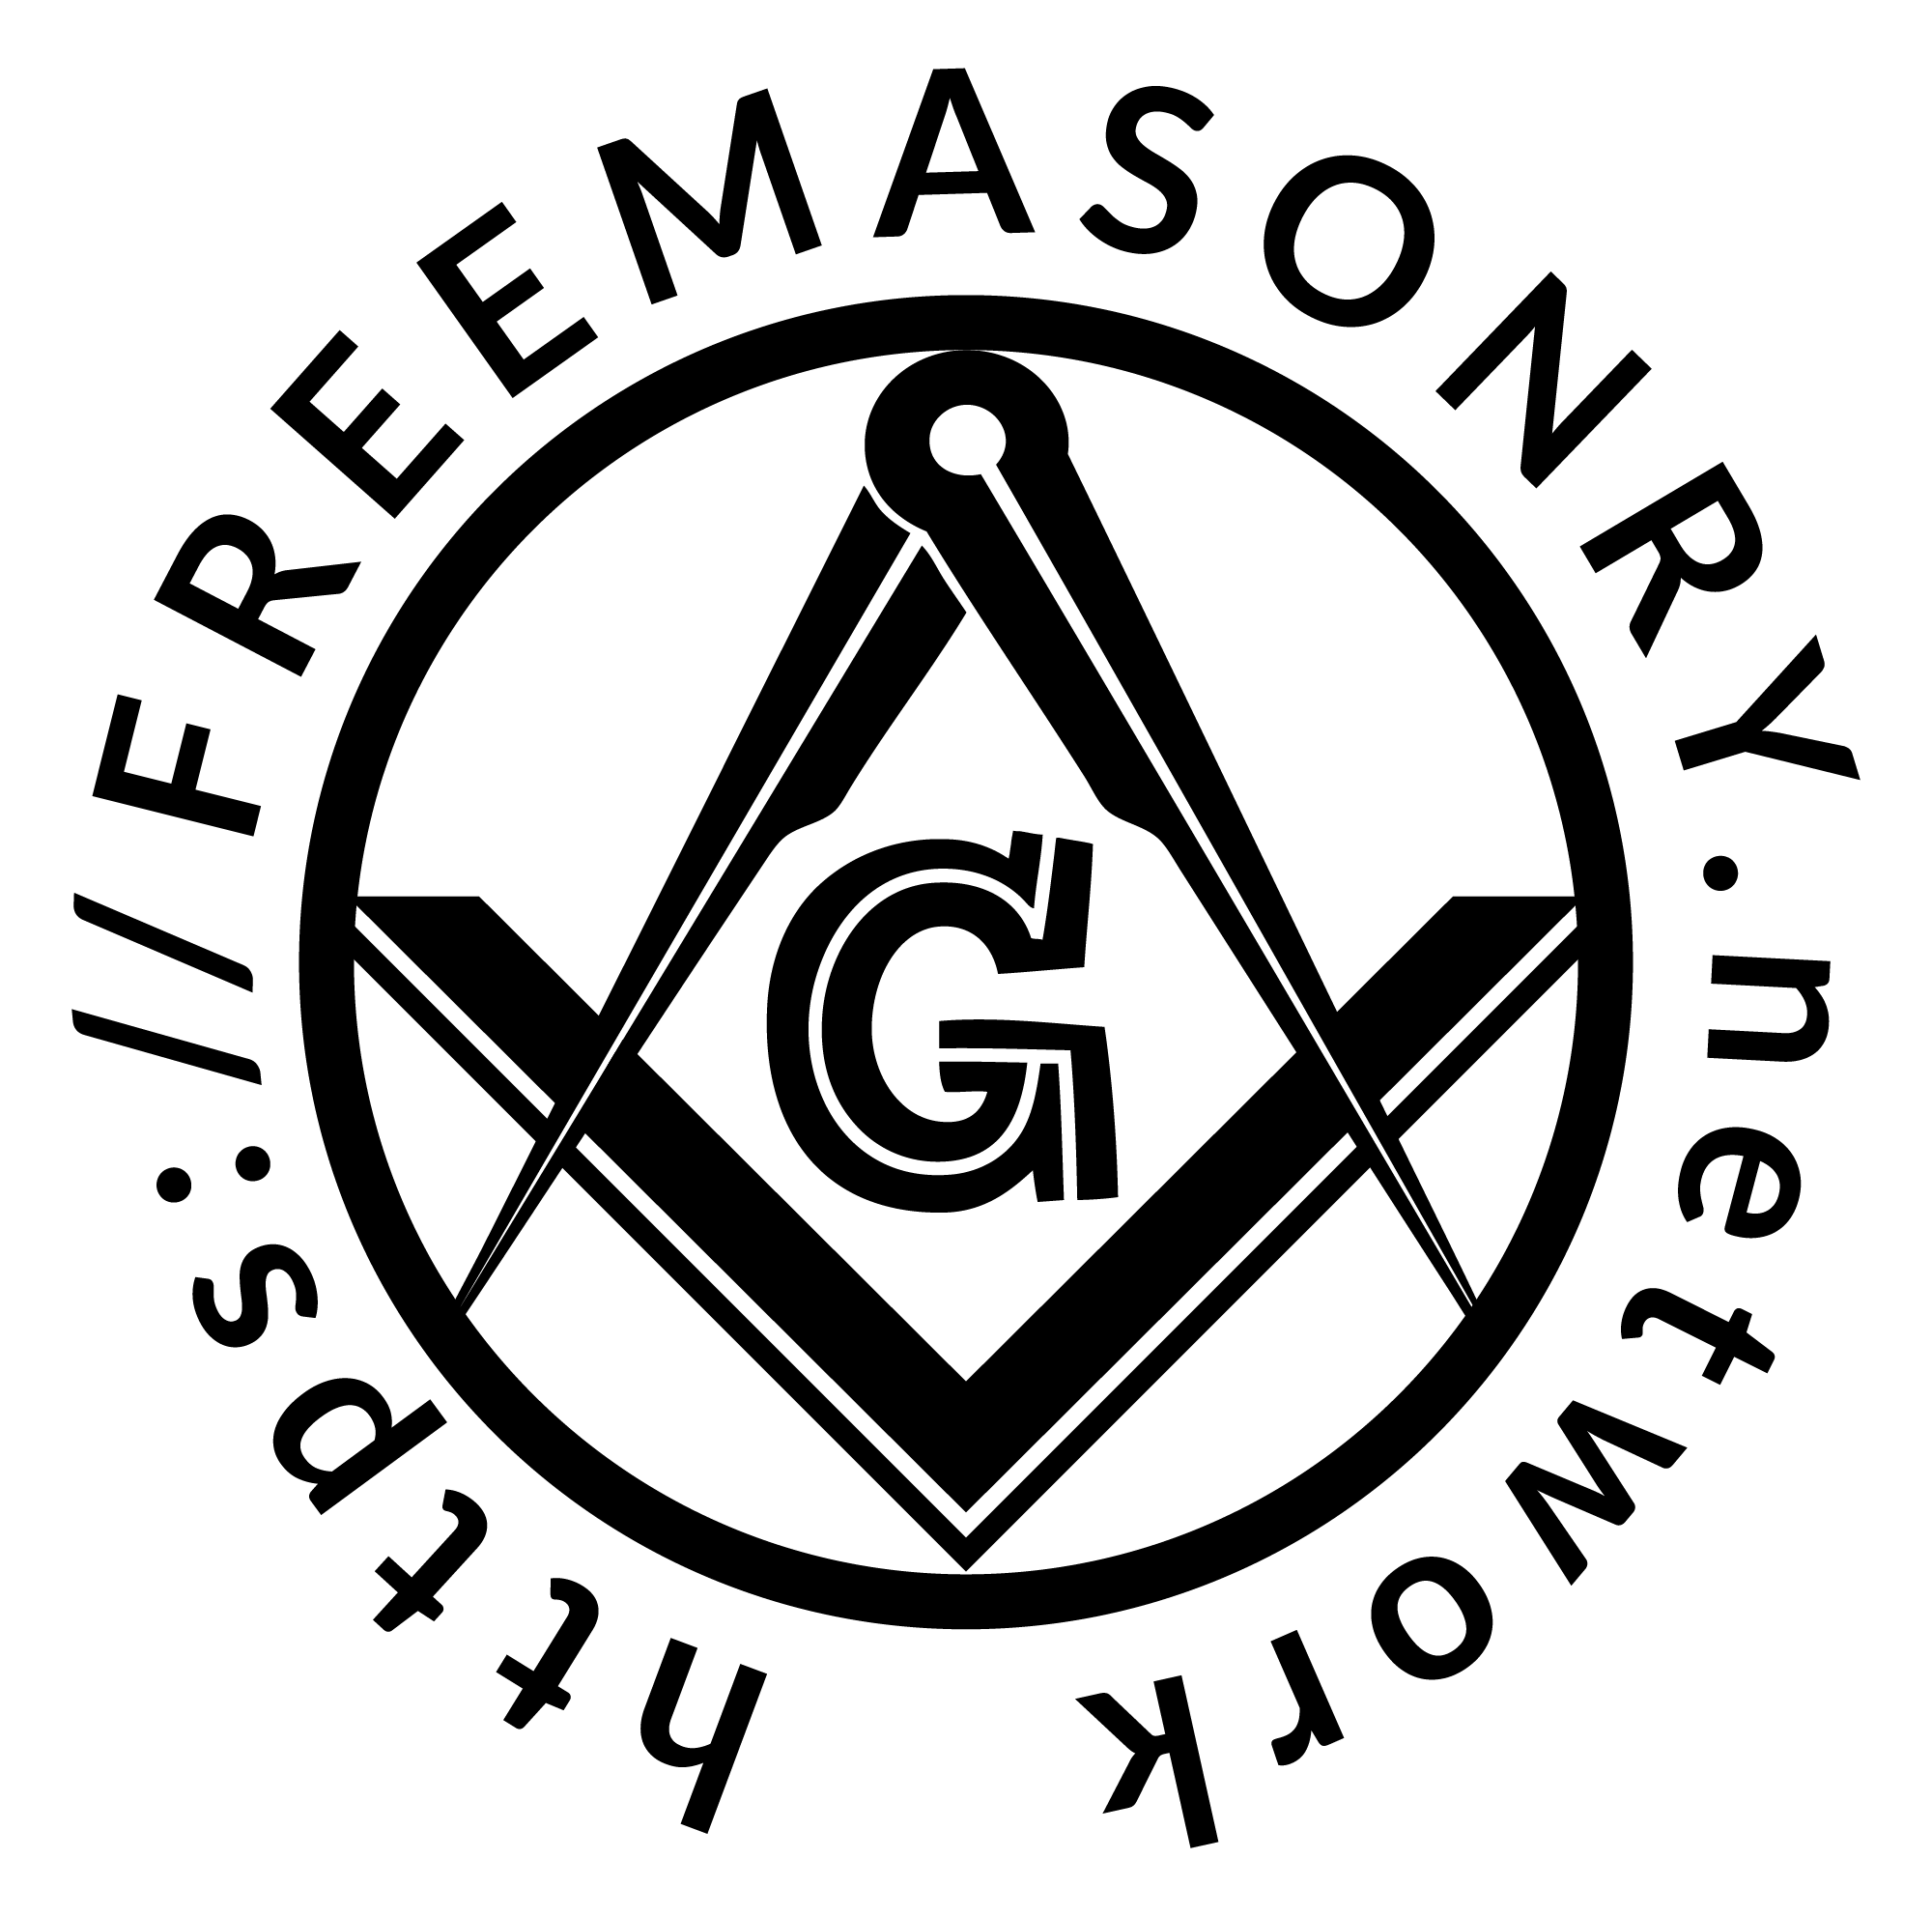 WORLD WAR I AND FREEMASONRY